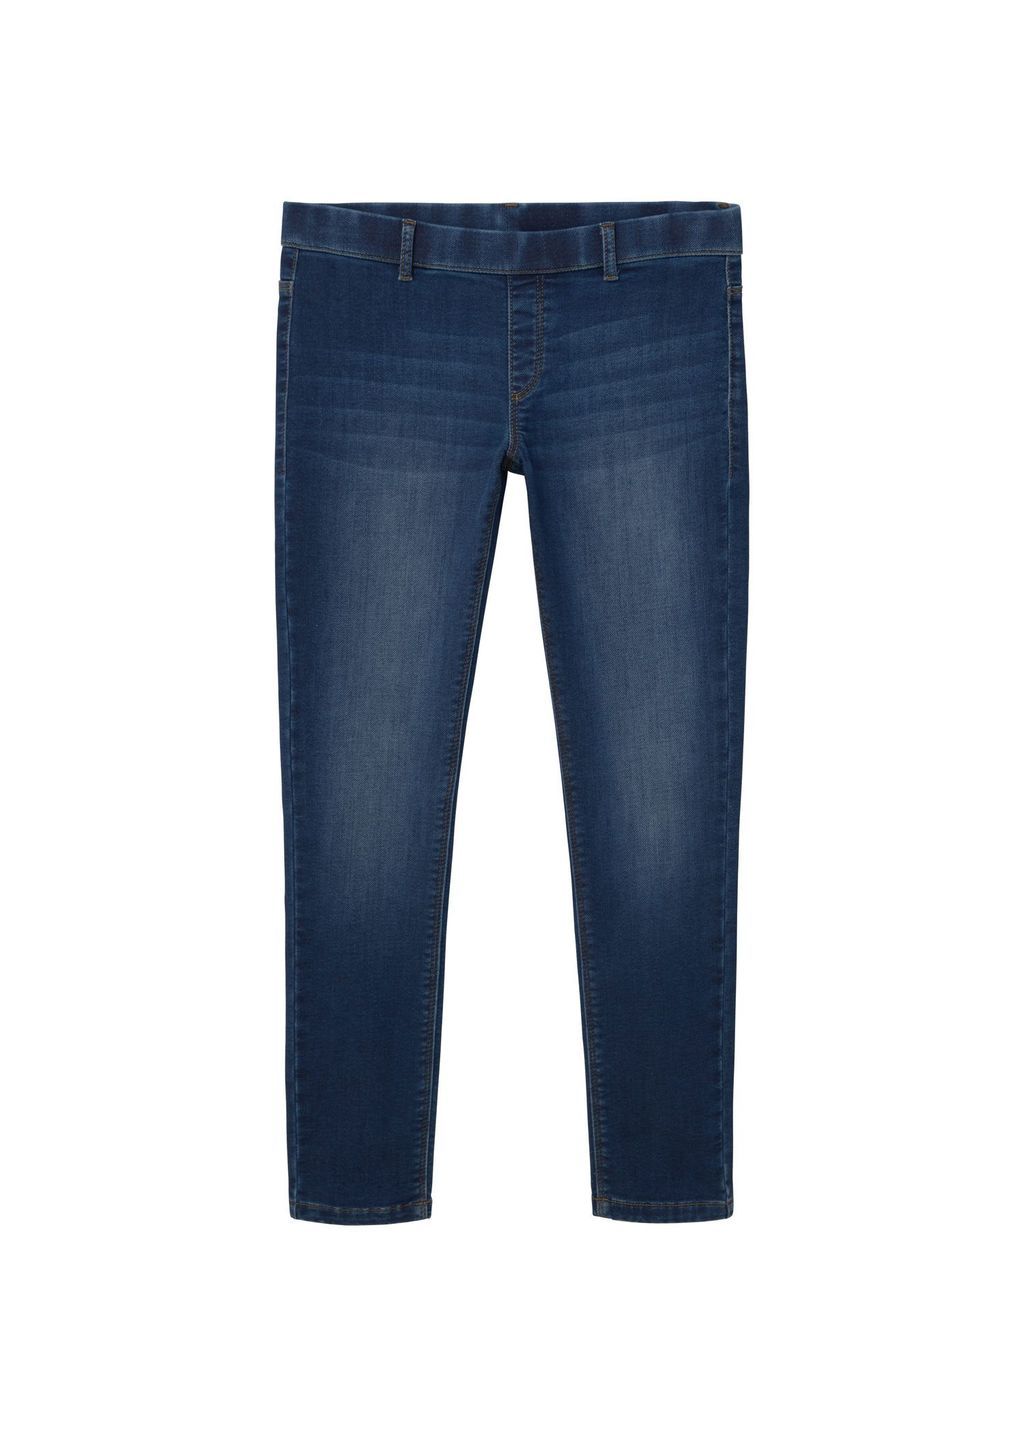 Dark Runner Jeggings, Blue - length: standard; pattern: plain; style: jeggings; waist: mid/regular rise; predominant colour: navy; occasions: casual; fibres: cotton - stretch; jeans detail: whiskering, shading down centre of thigh, dark wash; texture group: denim; pattern type: fabric; season: s/s 2016; wardrobe: basic